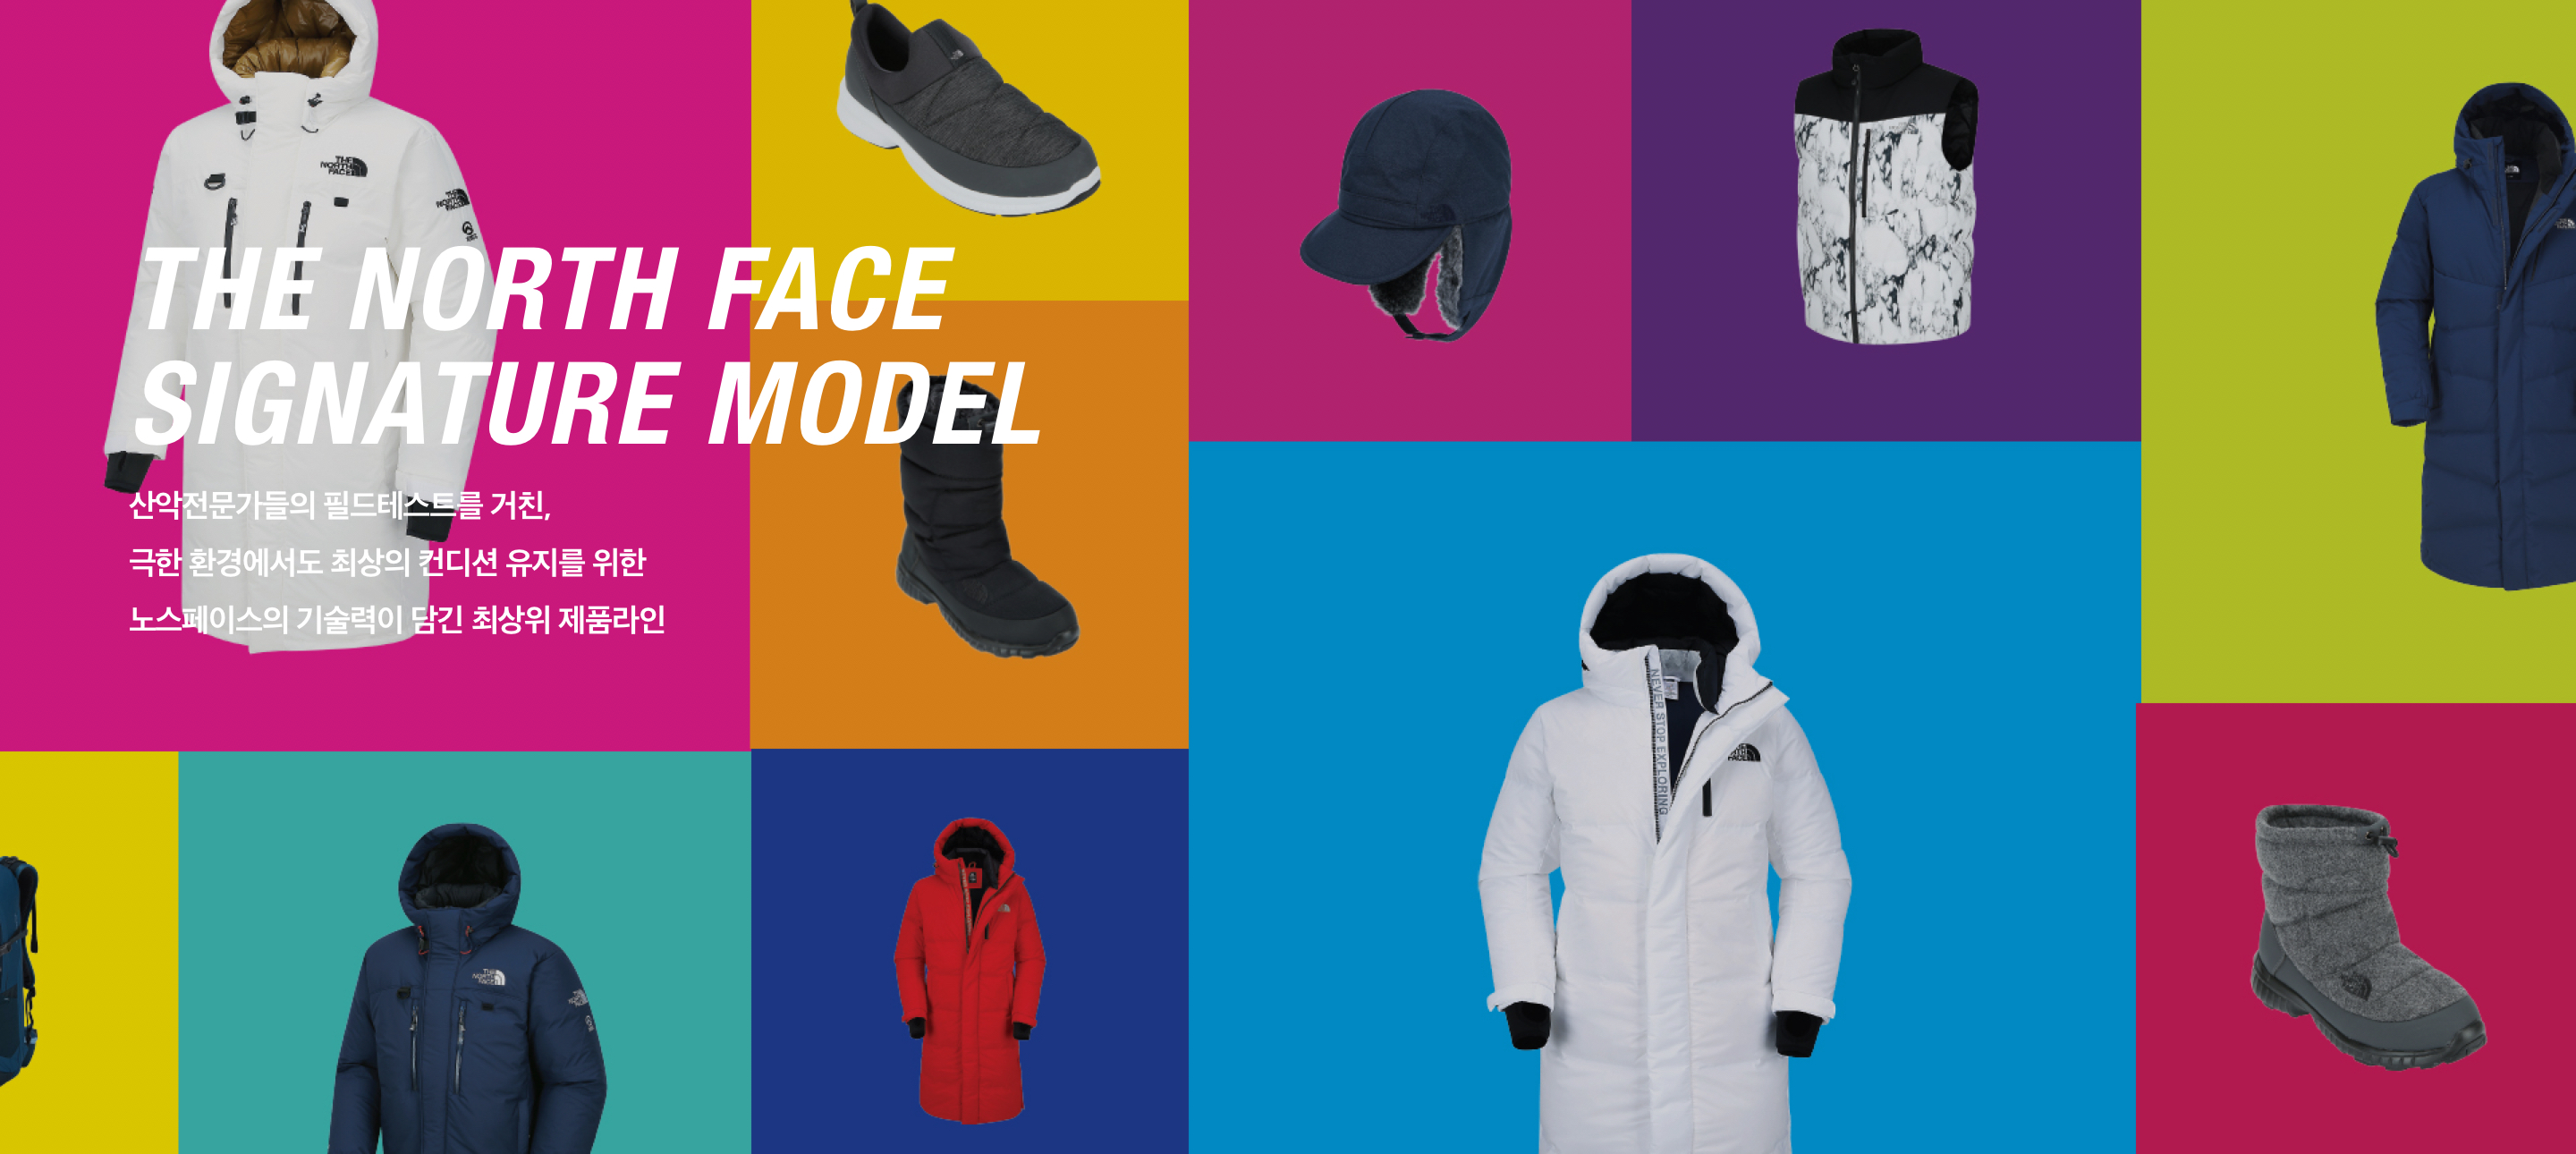 the north face signature model